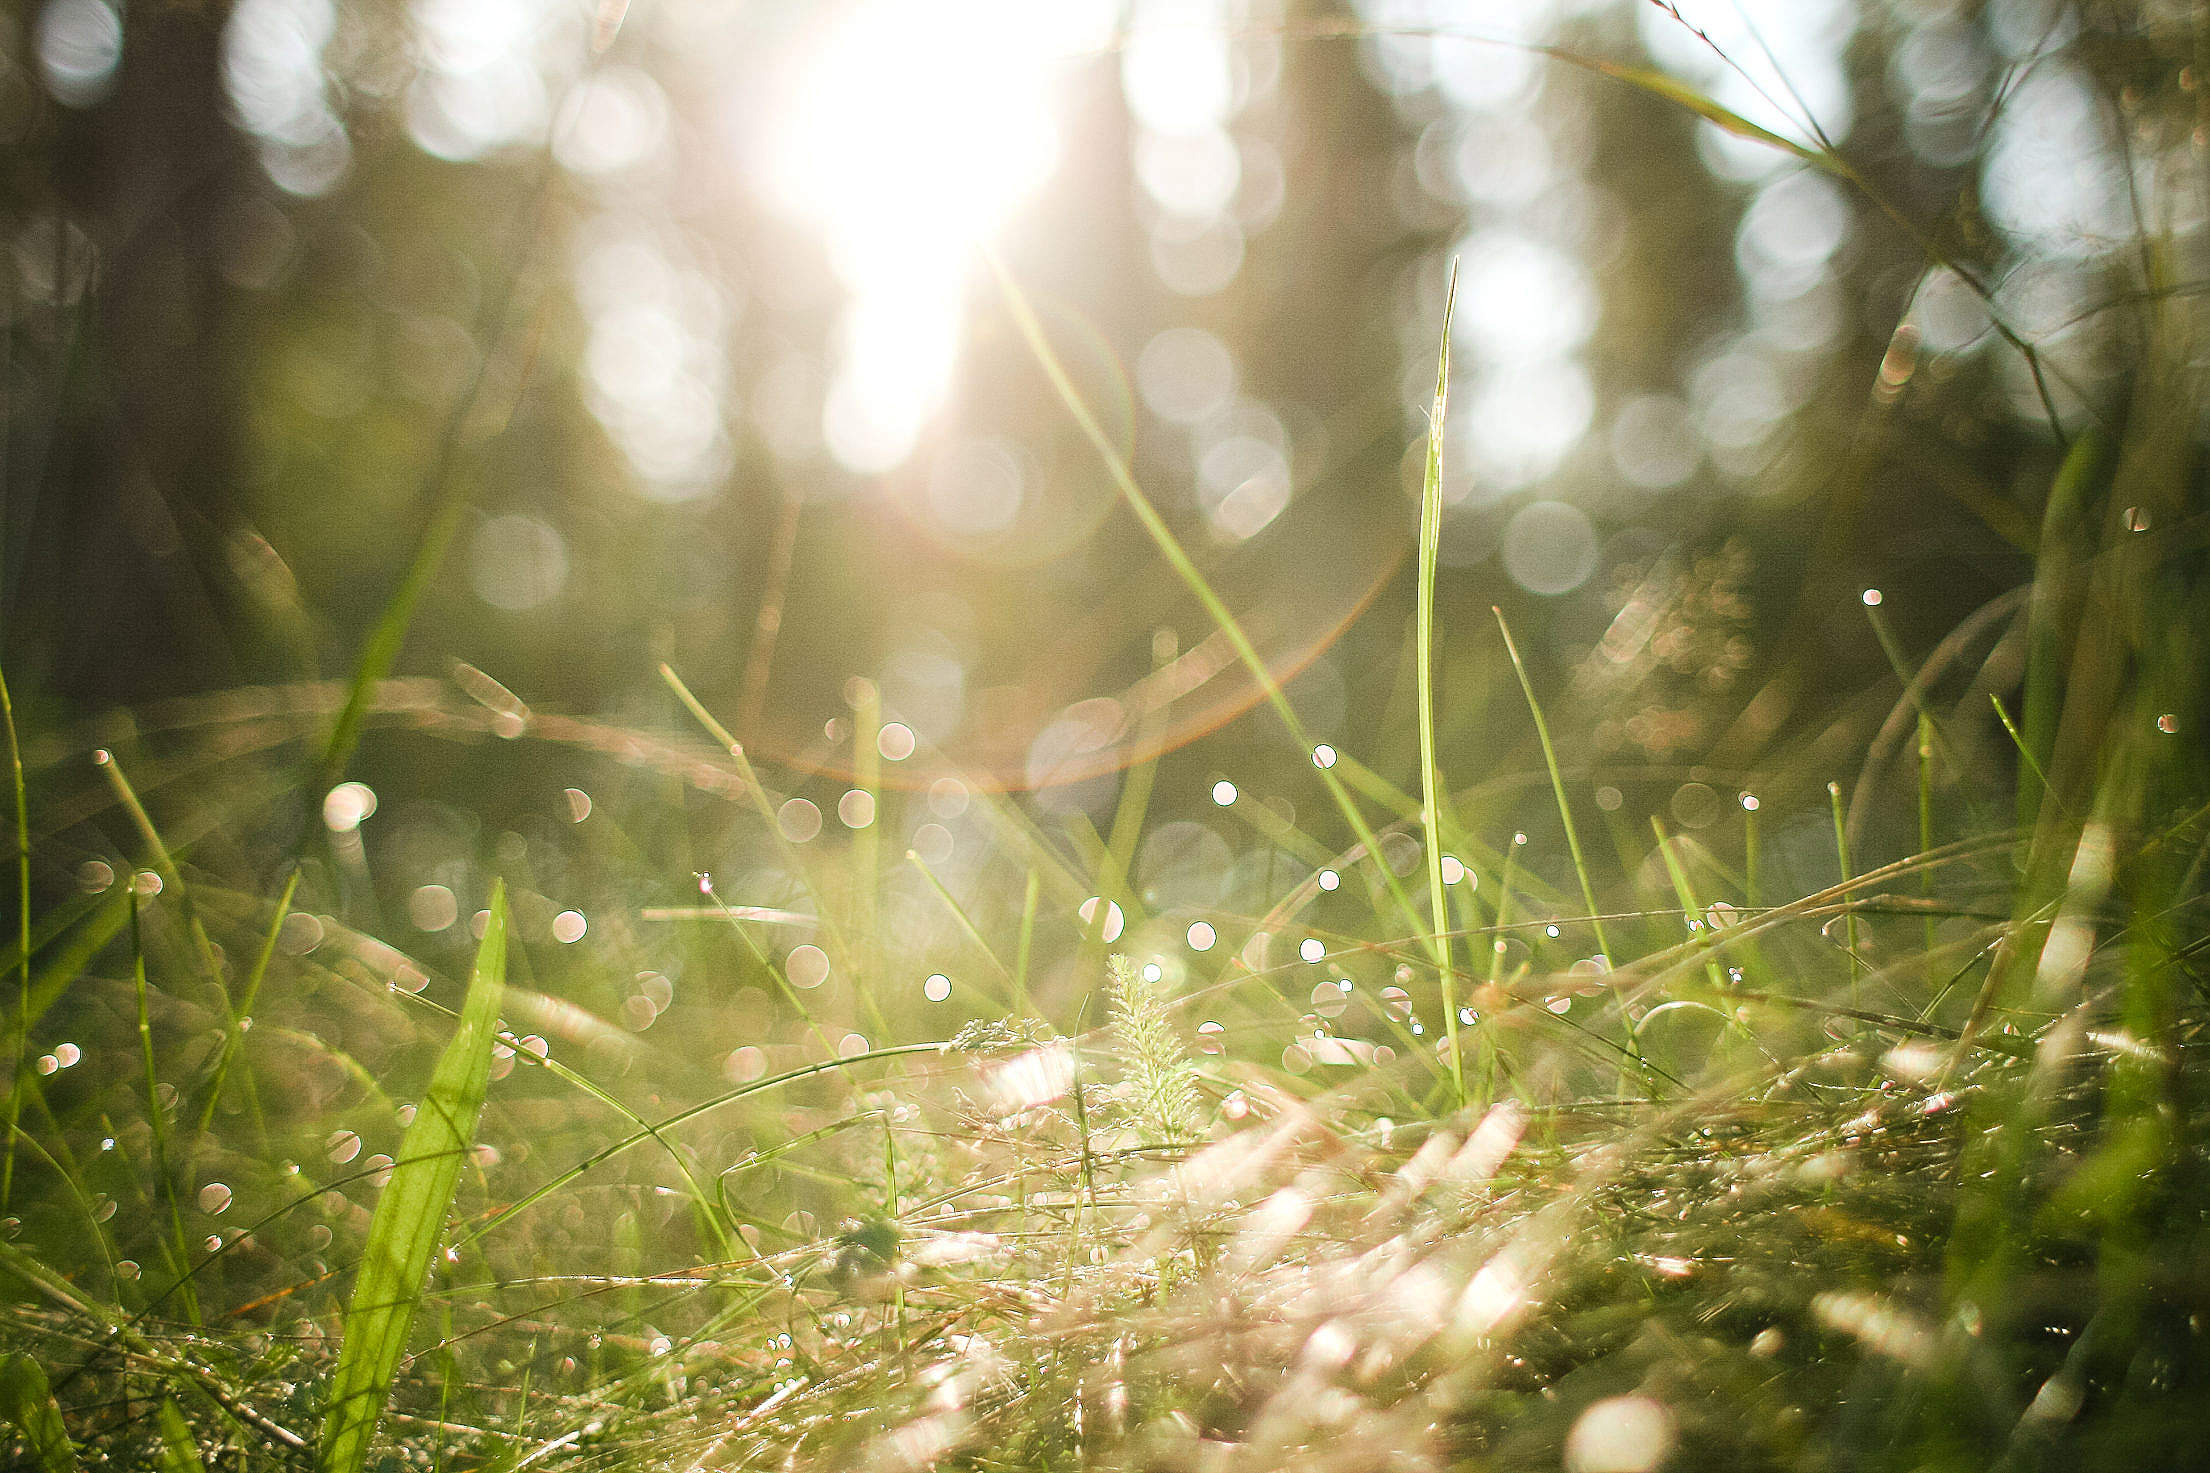 Morning Forest Grass Free Stock Photo